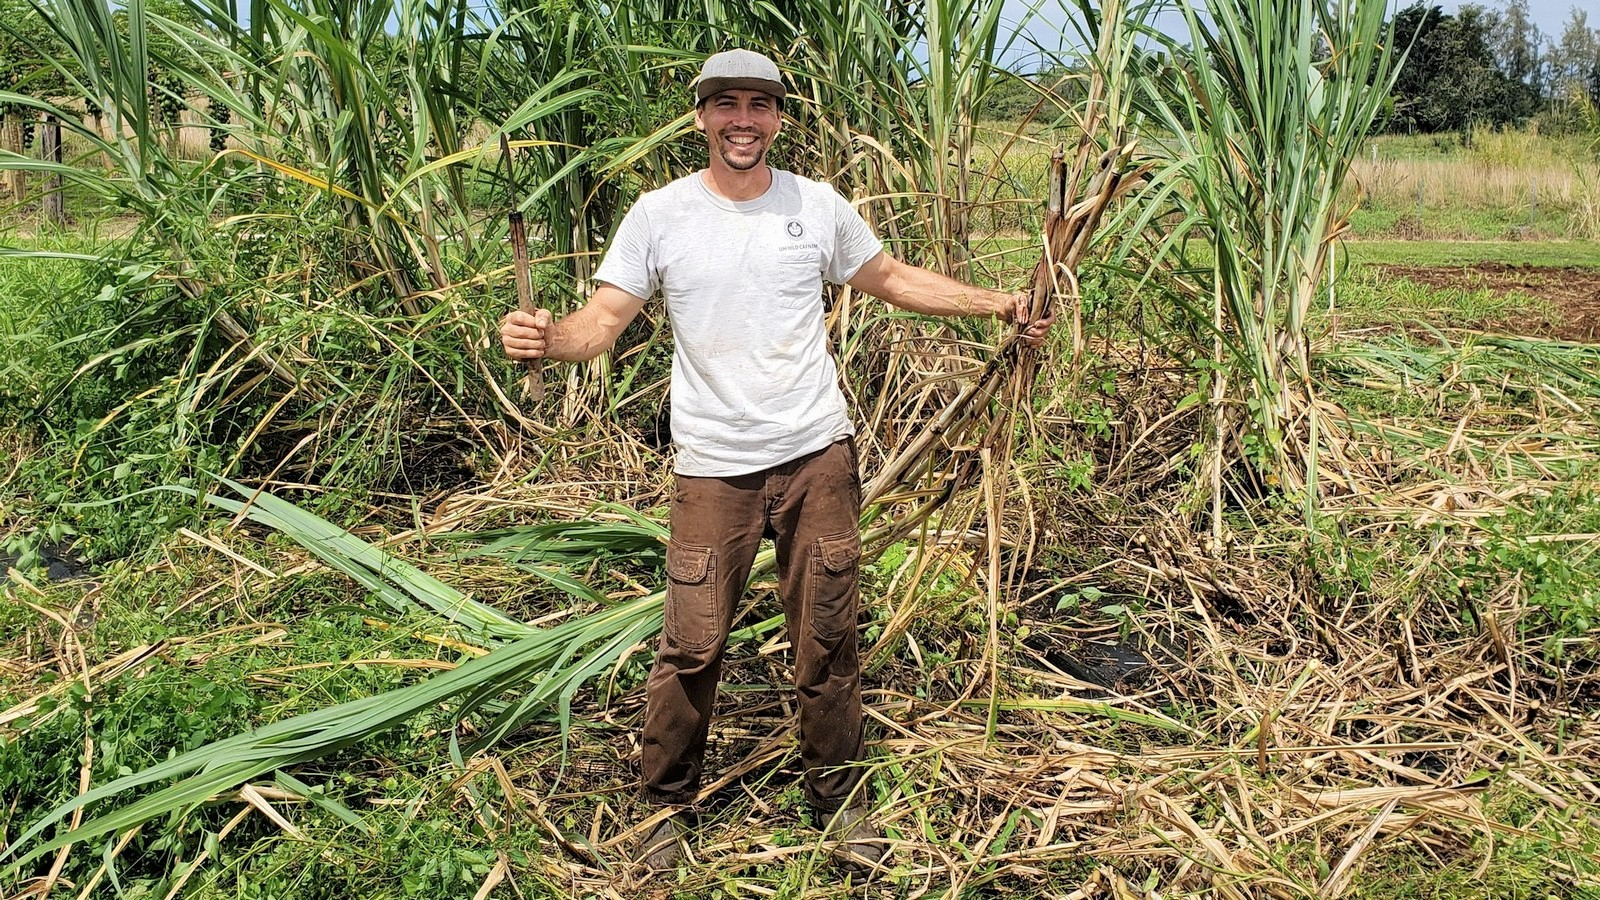 Jake Rodrique stands next to stand of sugarcane, holding seed cane in one hand and a cutting knife in the other.